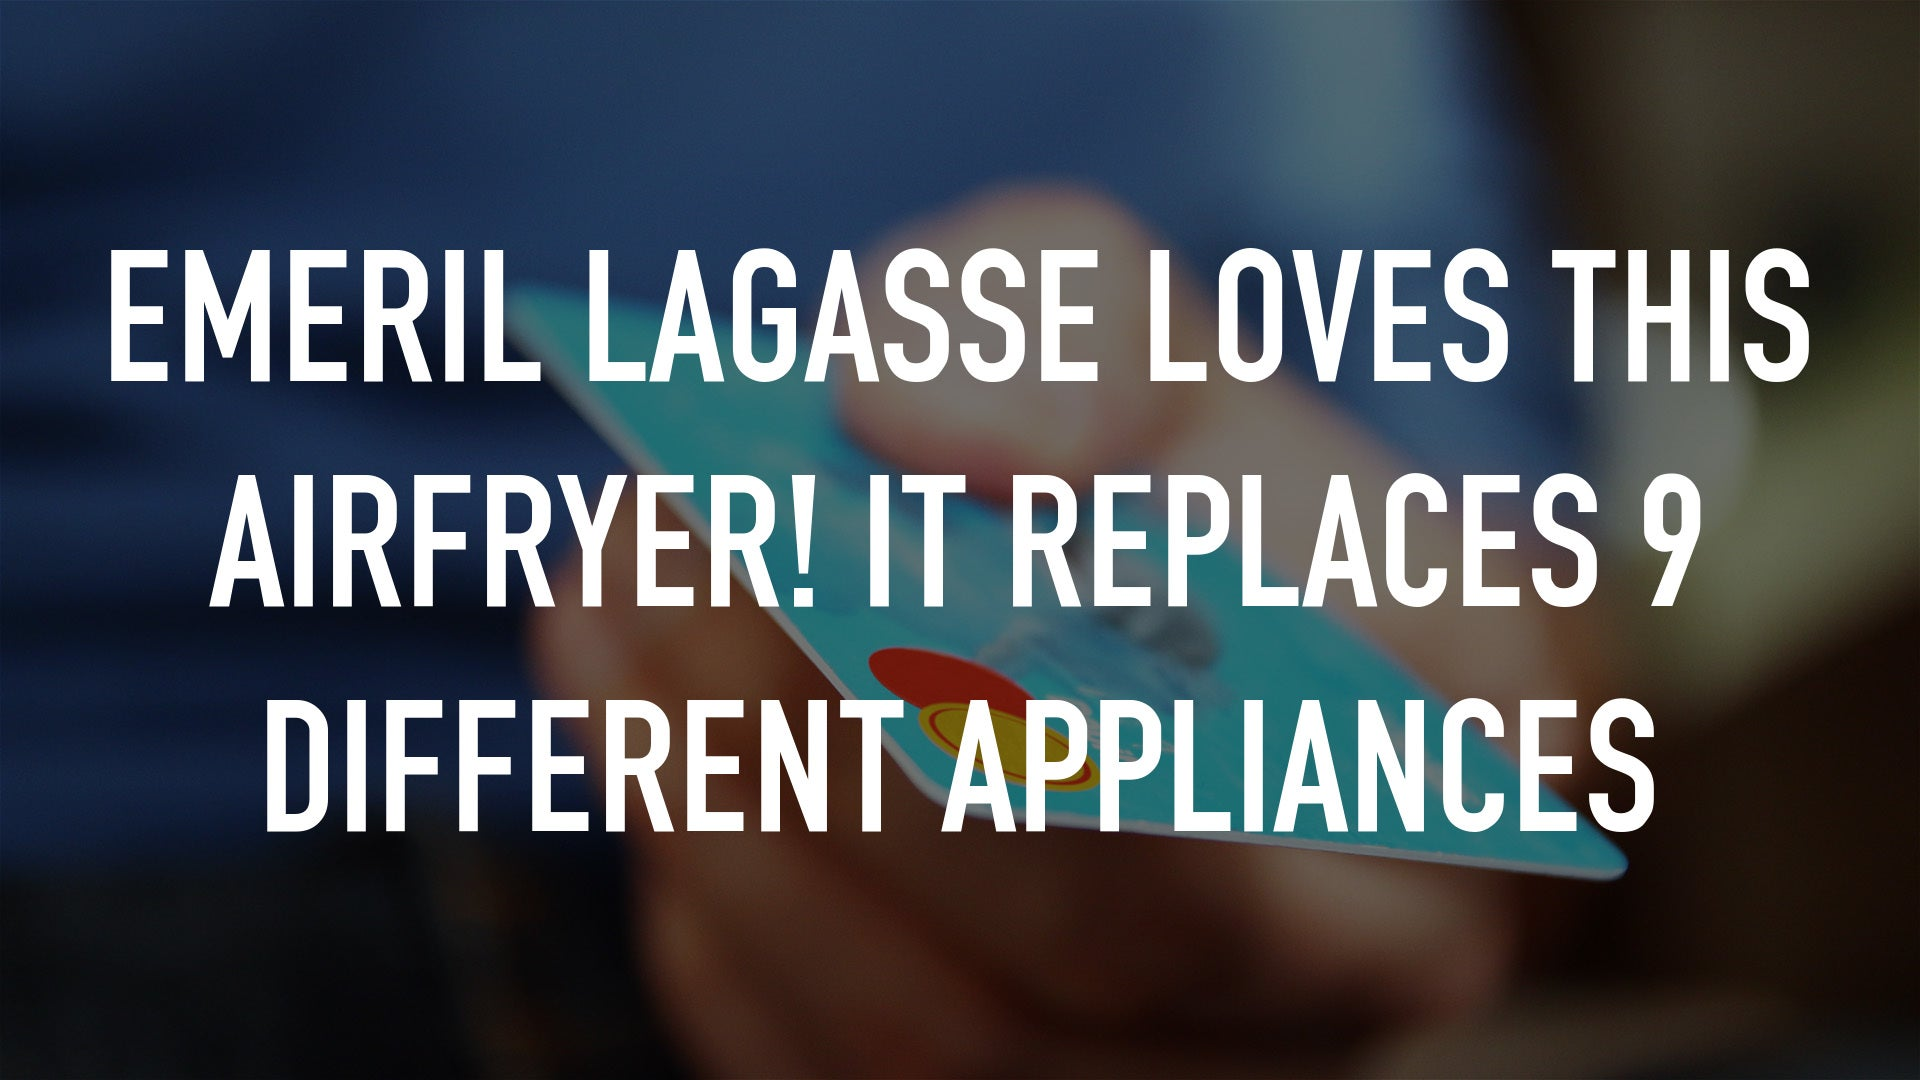 Emeril Lagasse LOVES this AirFryer! It Replaces 9 Different Appliances